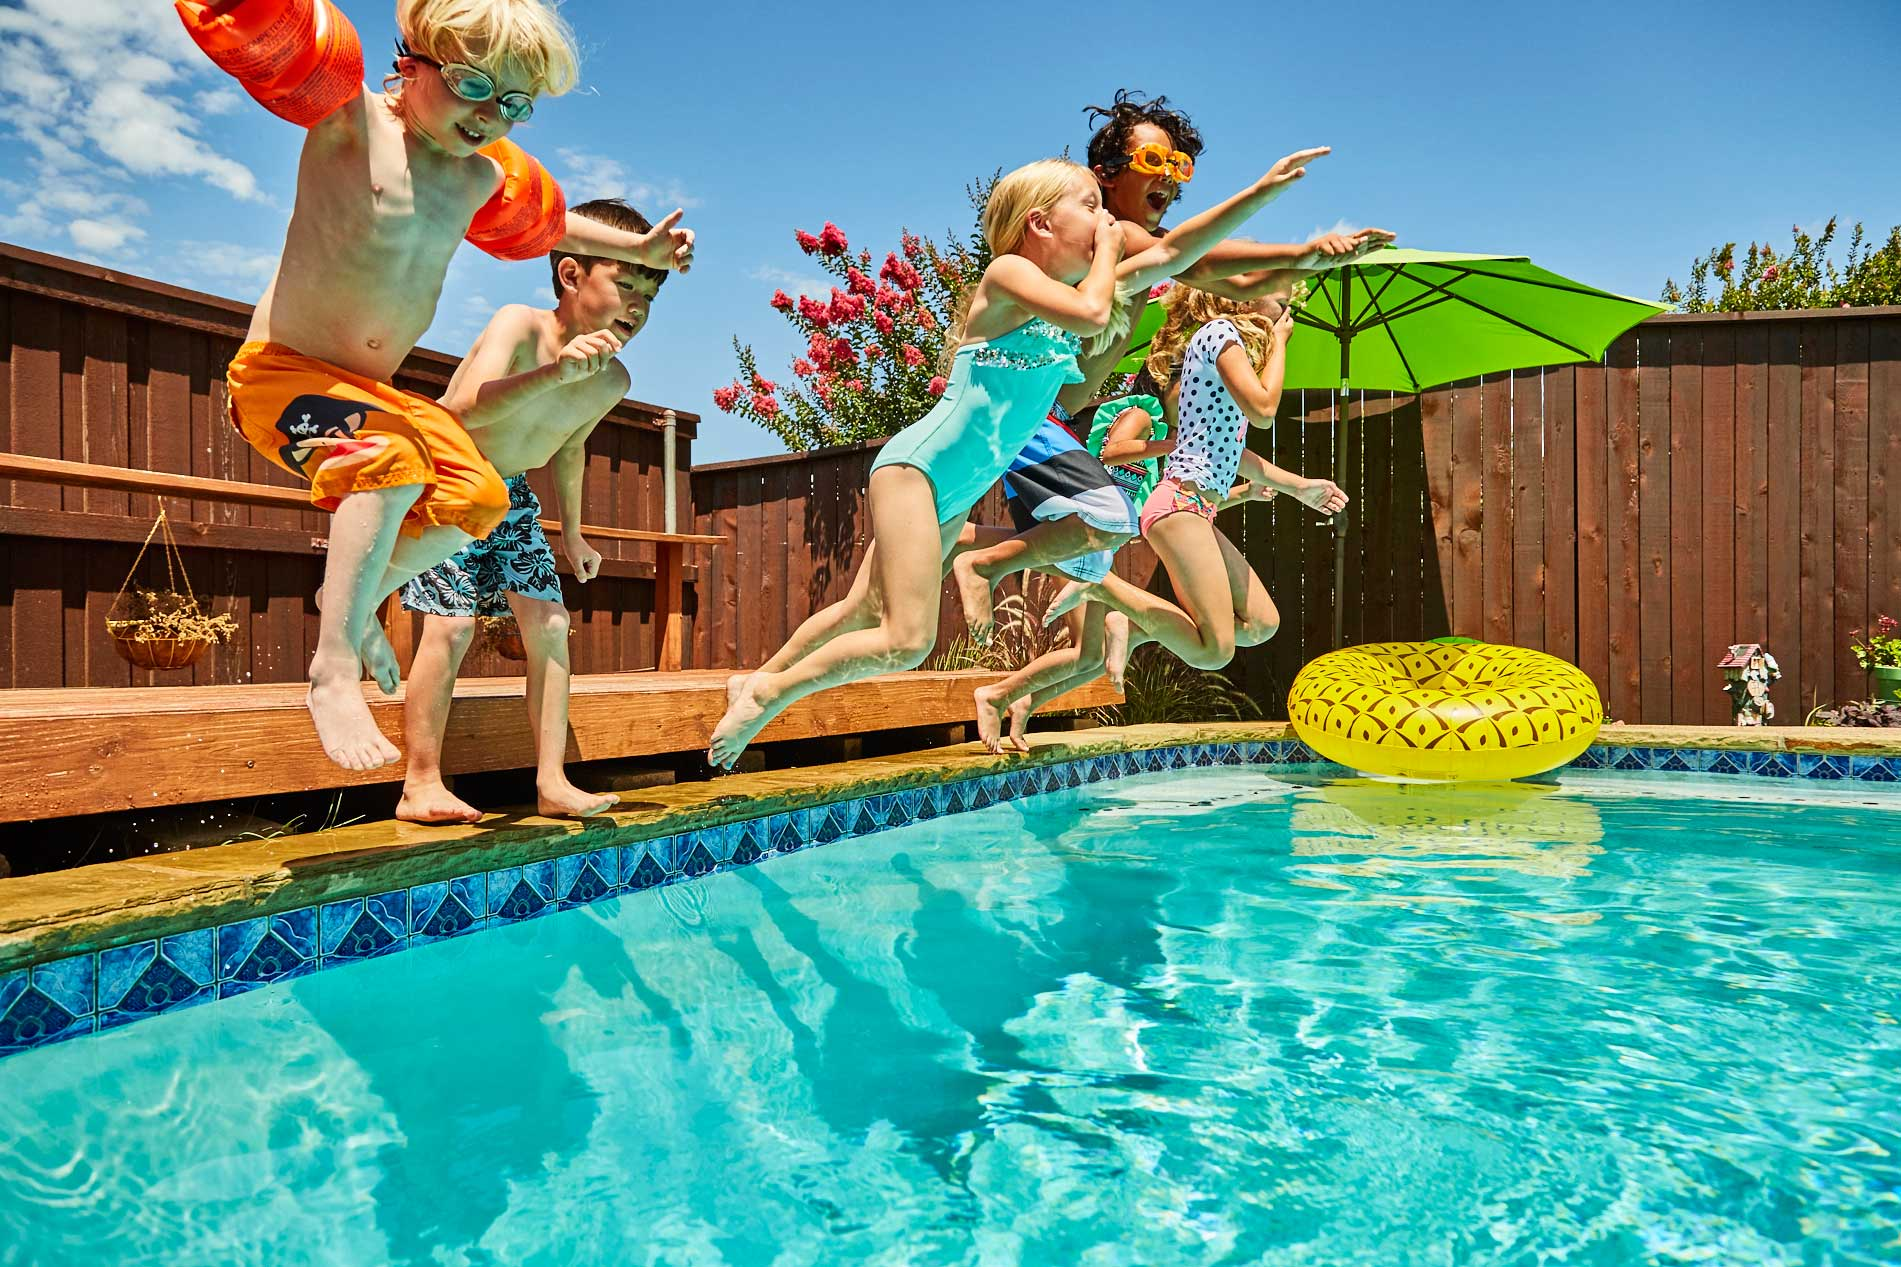 KIDS-Summer_POOL-Kids_261